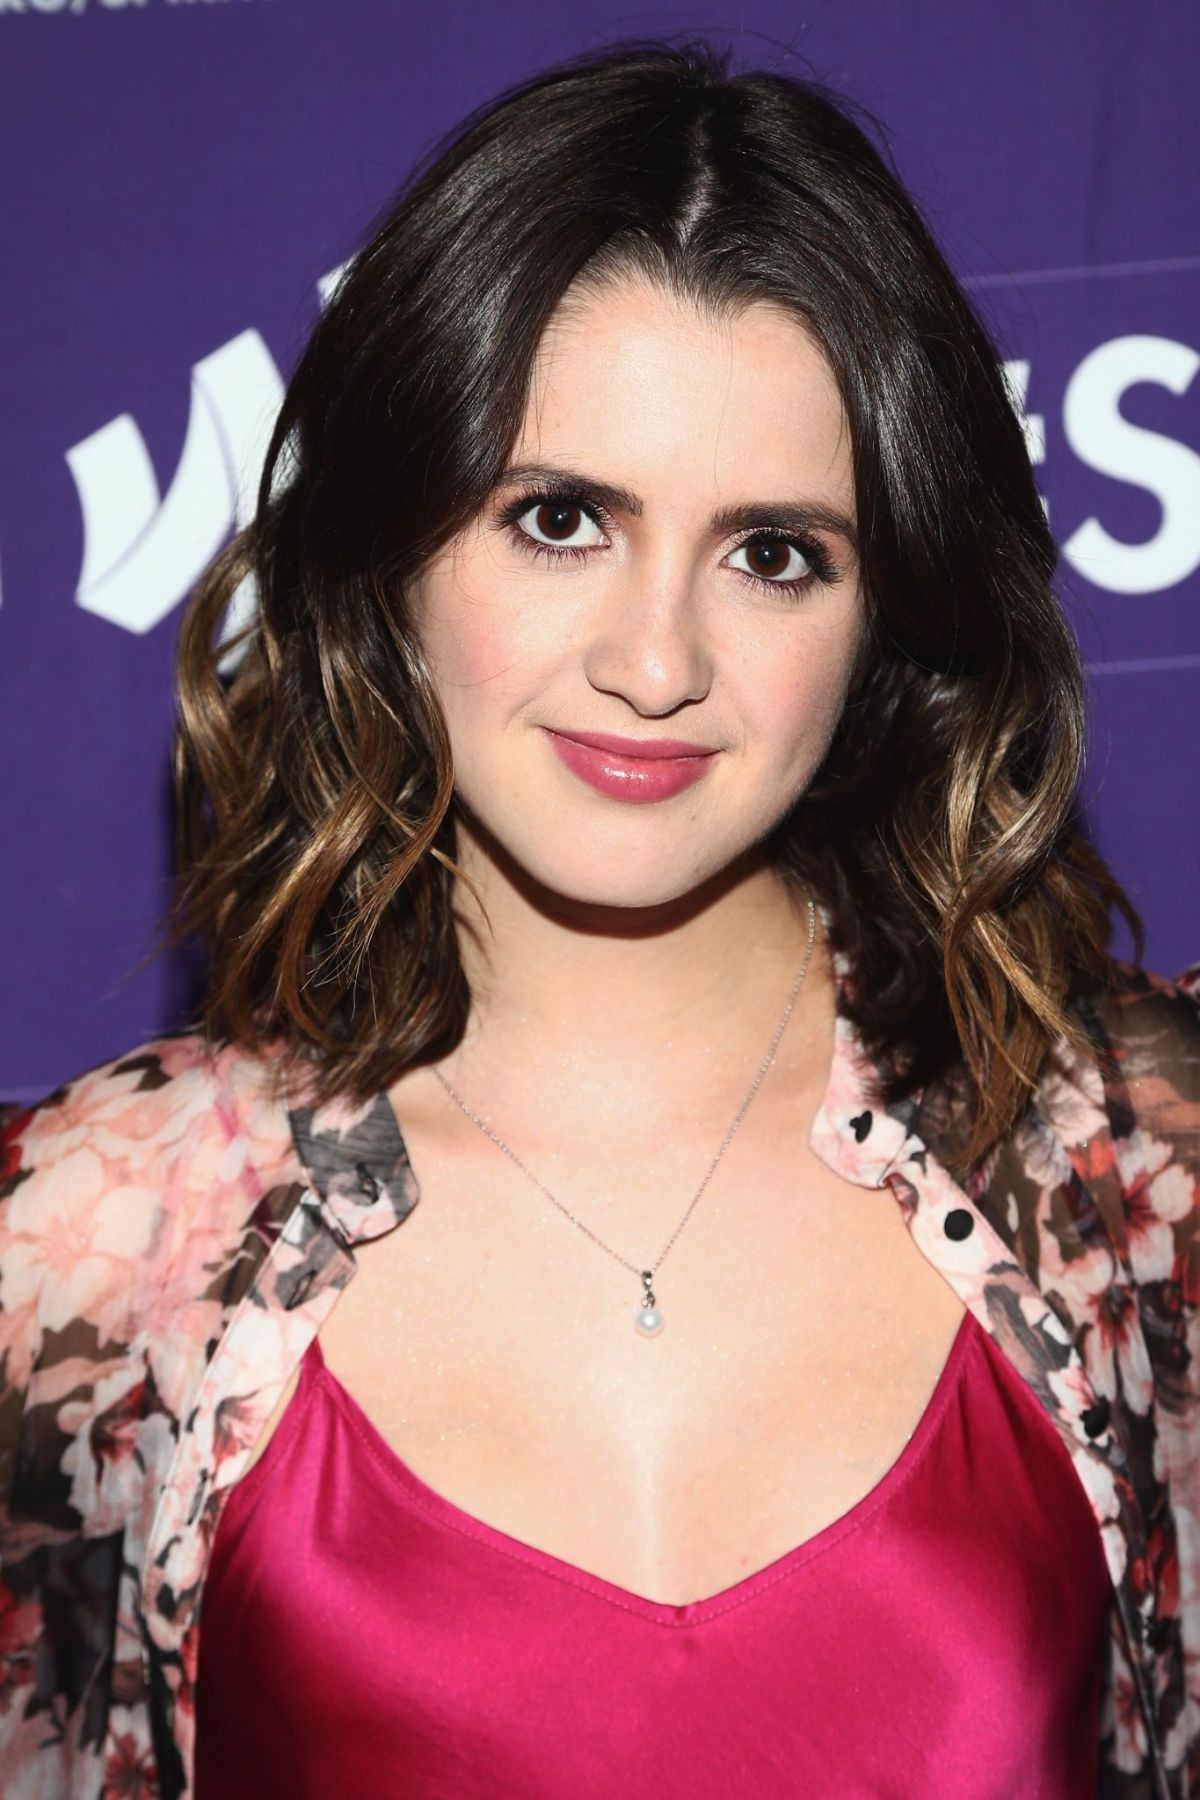 LAURA MARANO at Republic Records VMA After-party in West